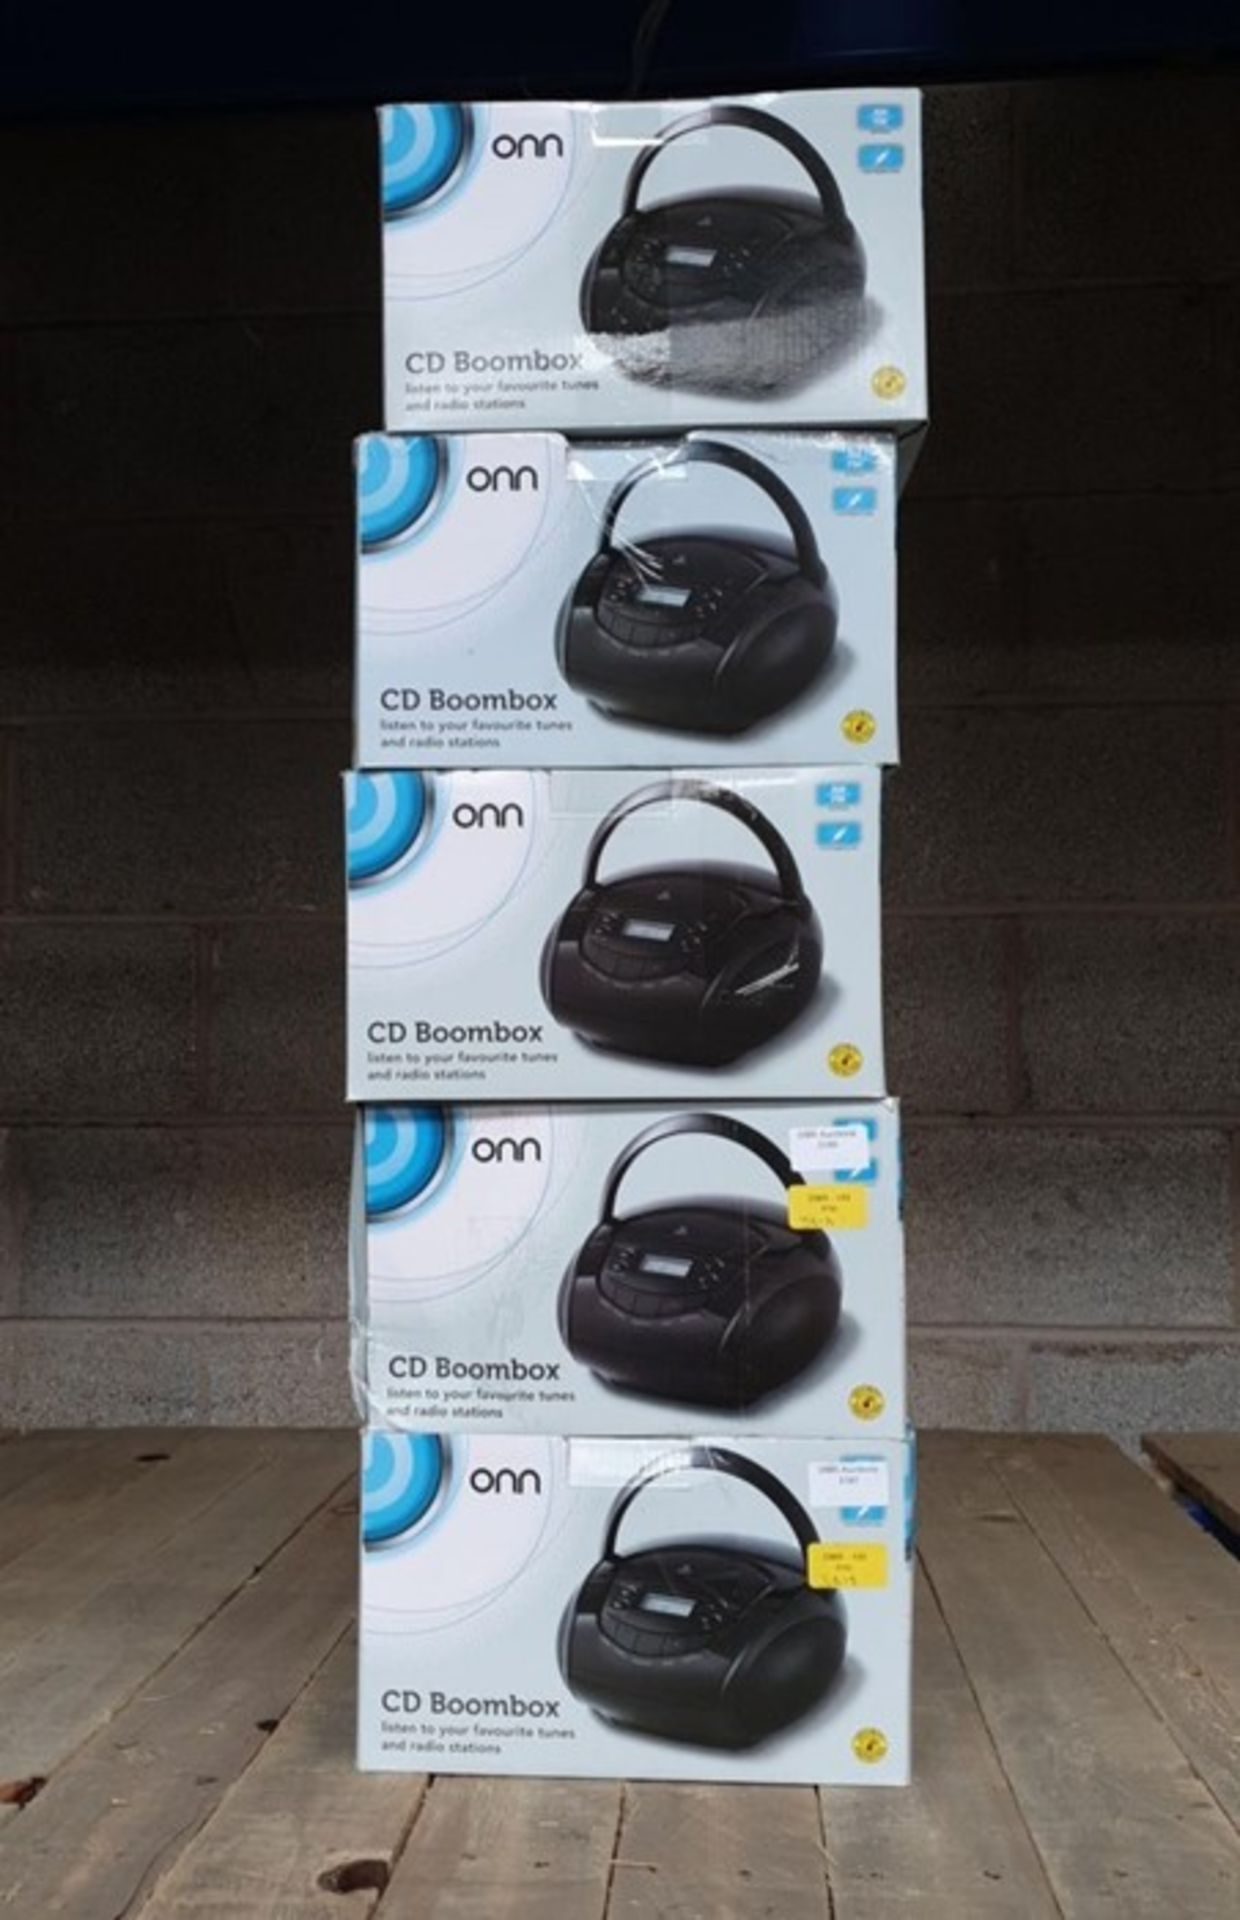 Lot 48 - 1 LOT TO CONTAIN 5 ASSORTED ELECTRICALS, INCLUDES ONN BLACK BOOMBOXES / BL - 3813 (VIEWING HIGHLY